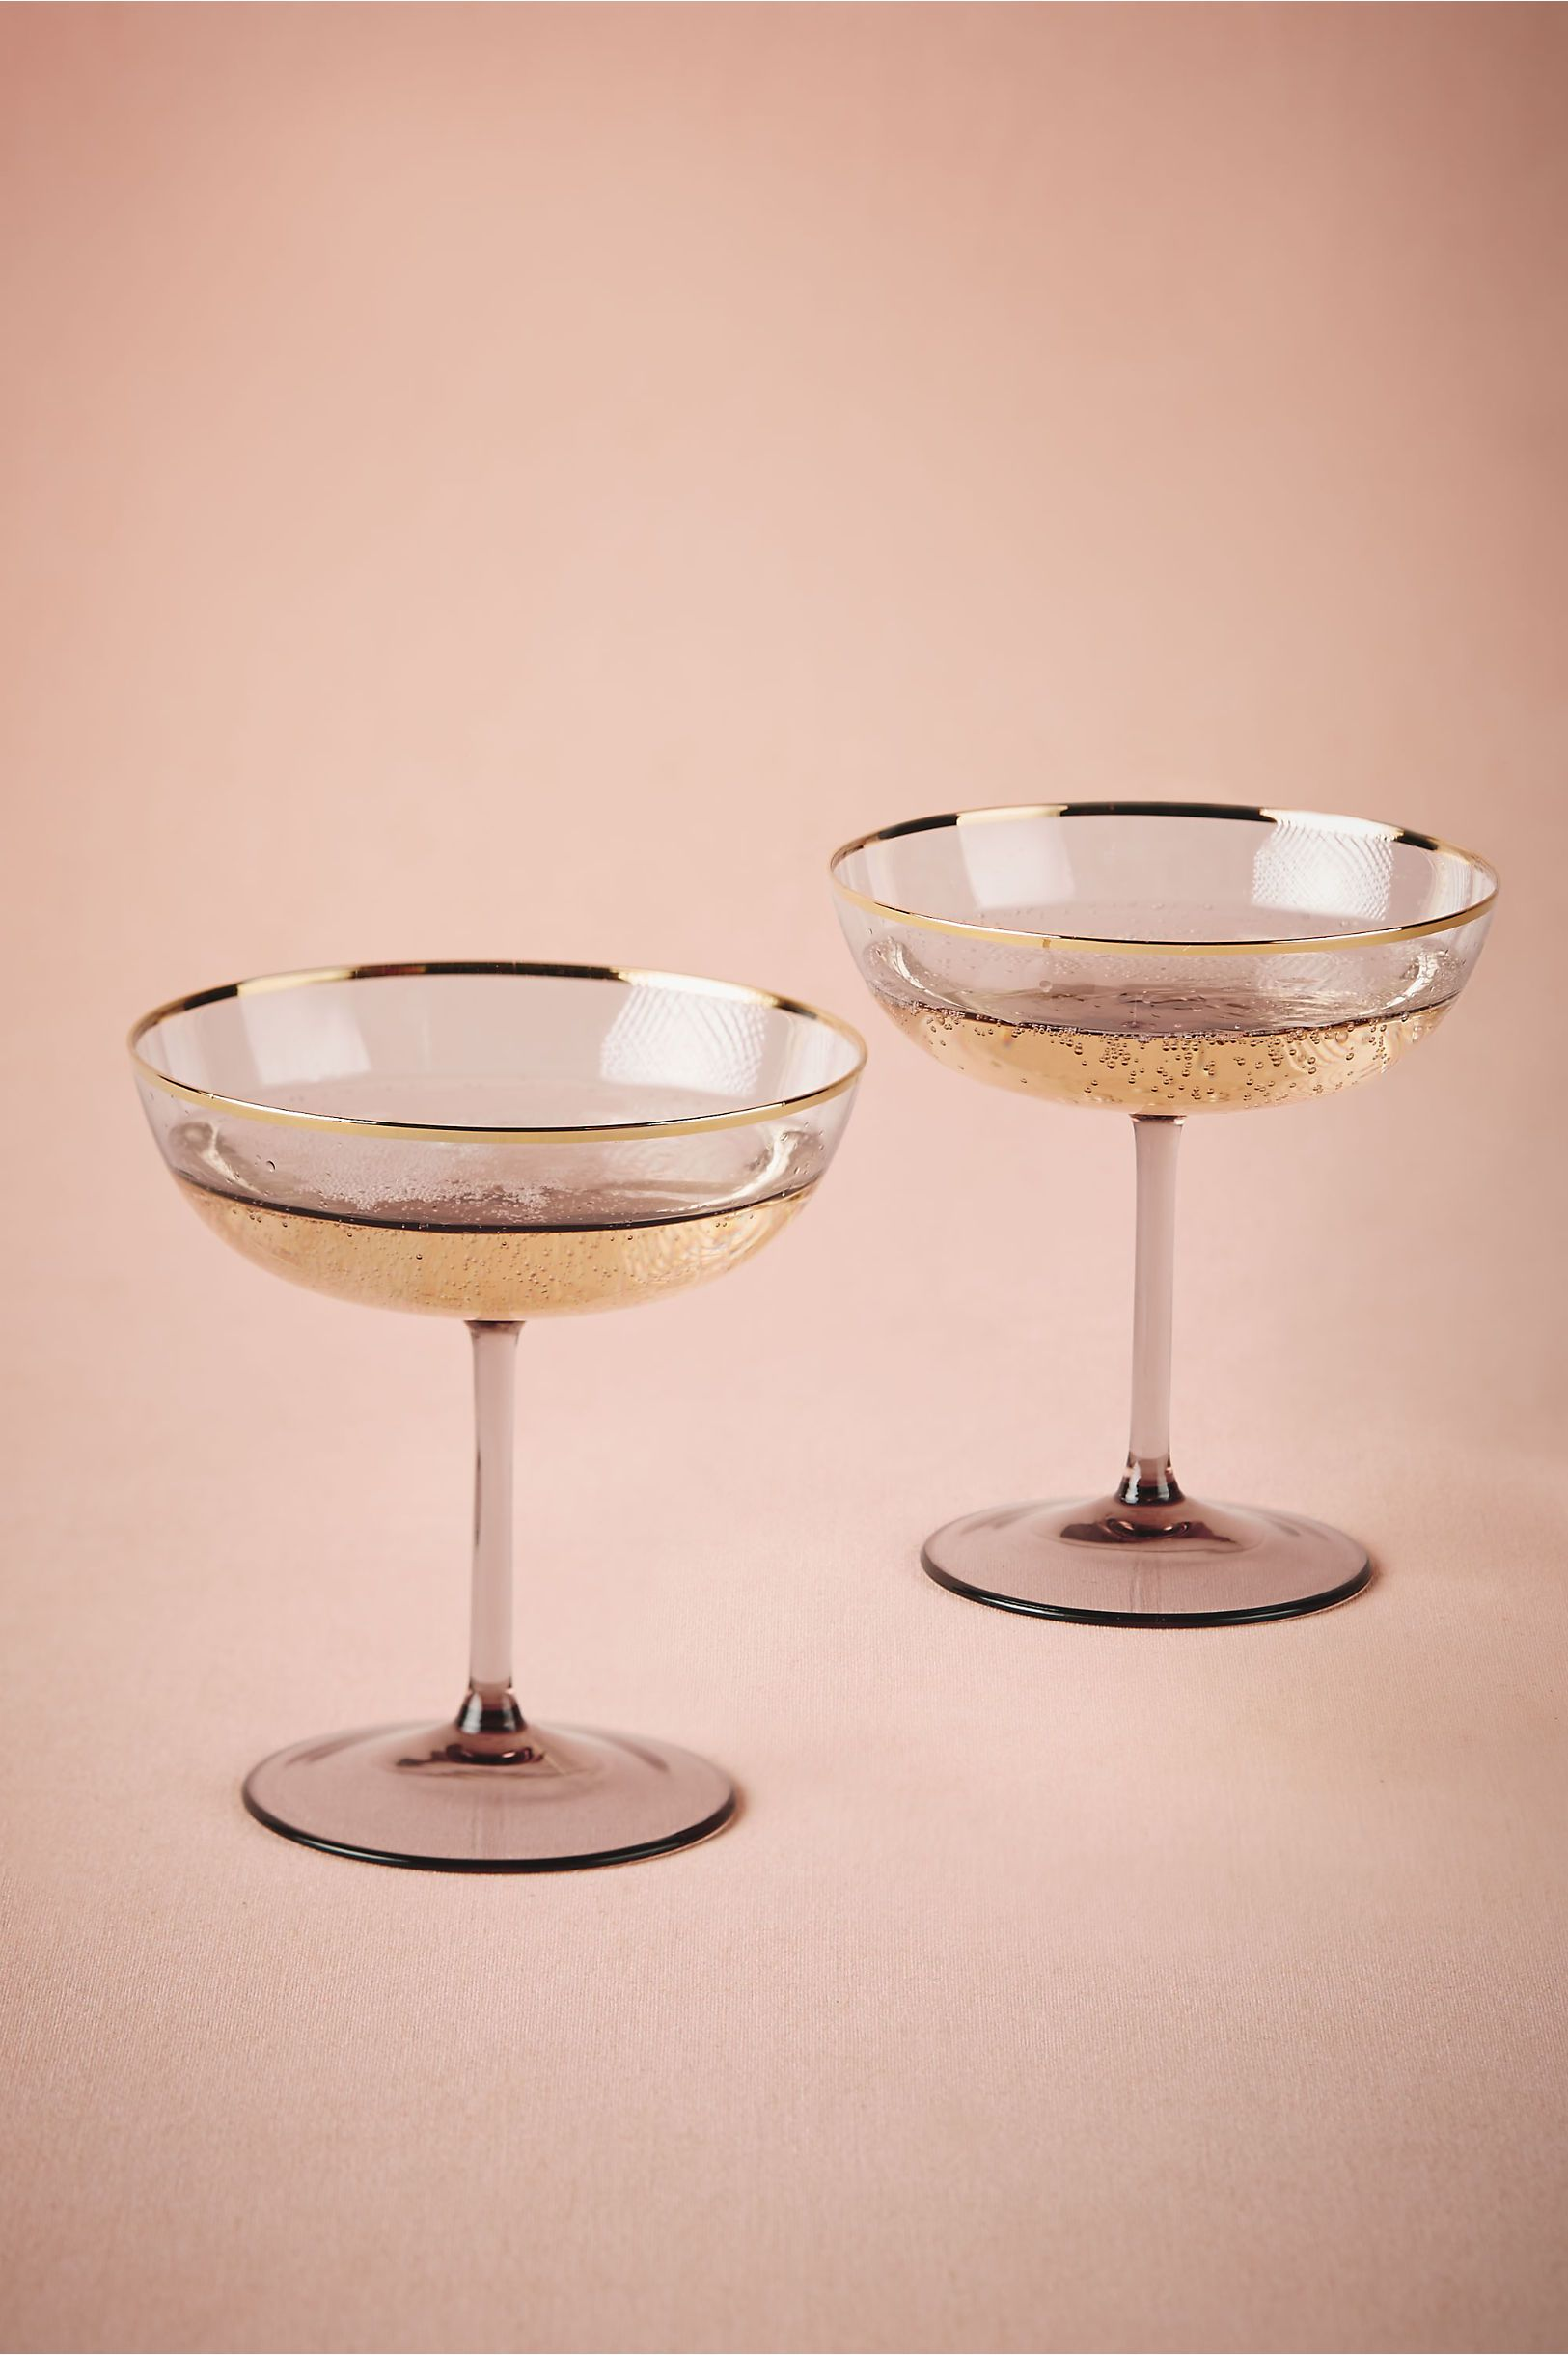 BHLDN Rosy-Cheeked Coupes (2) in Décor View All Décor at BHLDN ...